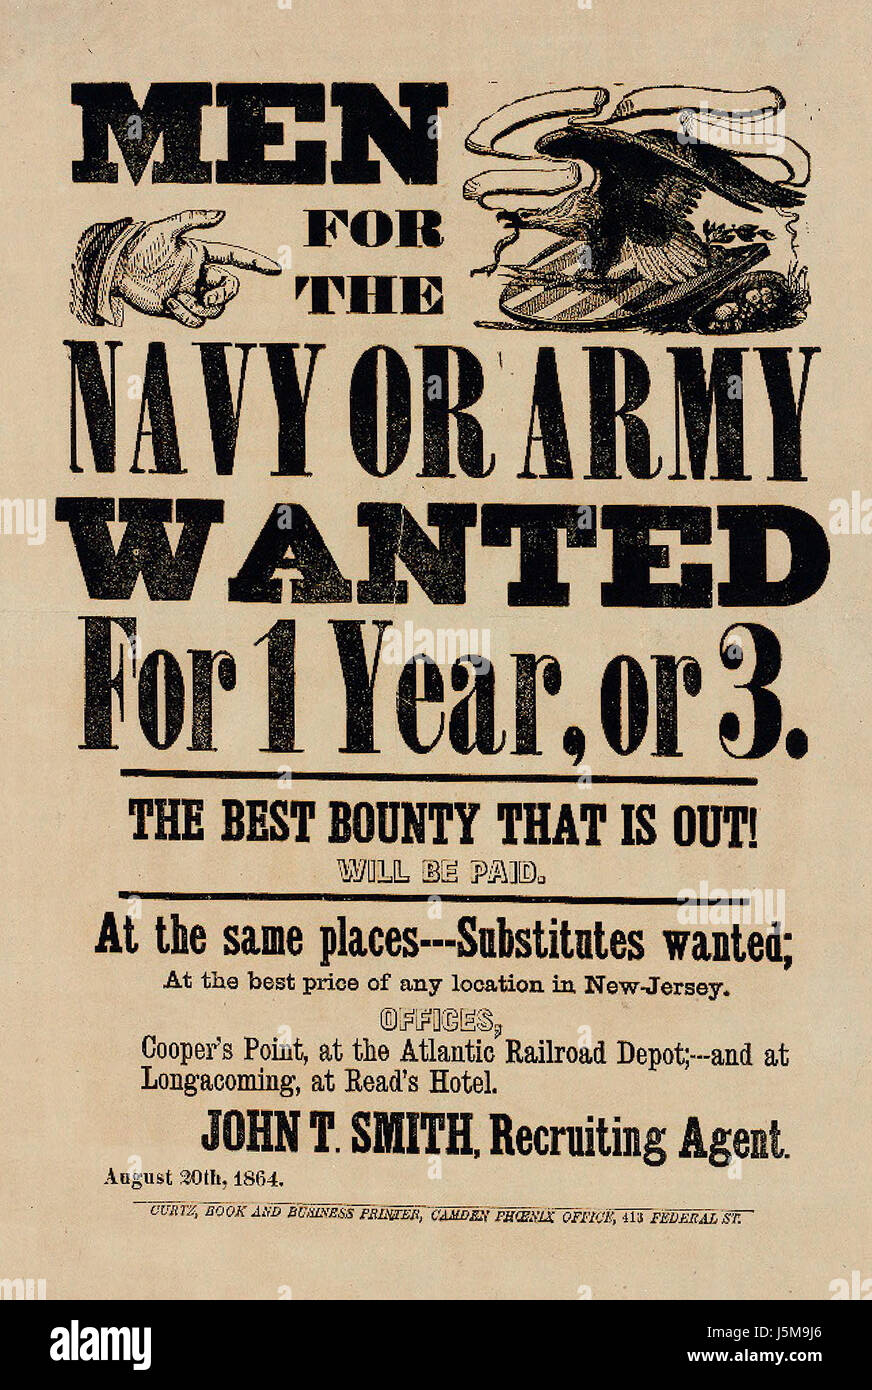 Men for the Army or Navy Wanted for 1 Year, or 3 - The Best Bounty that is out will be paid - American Civil War - Stock Image